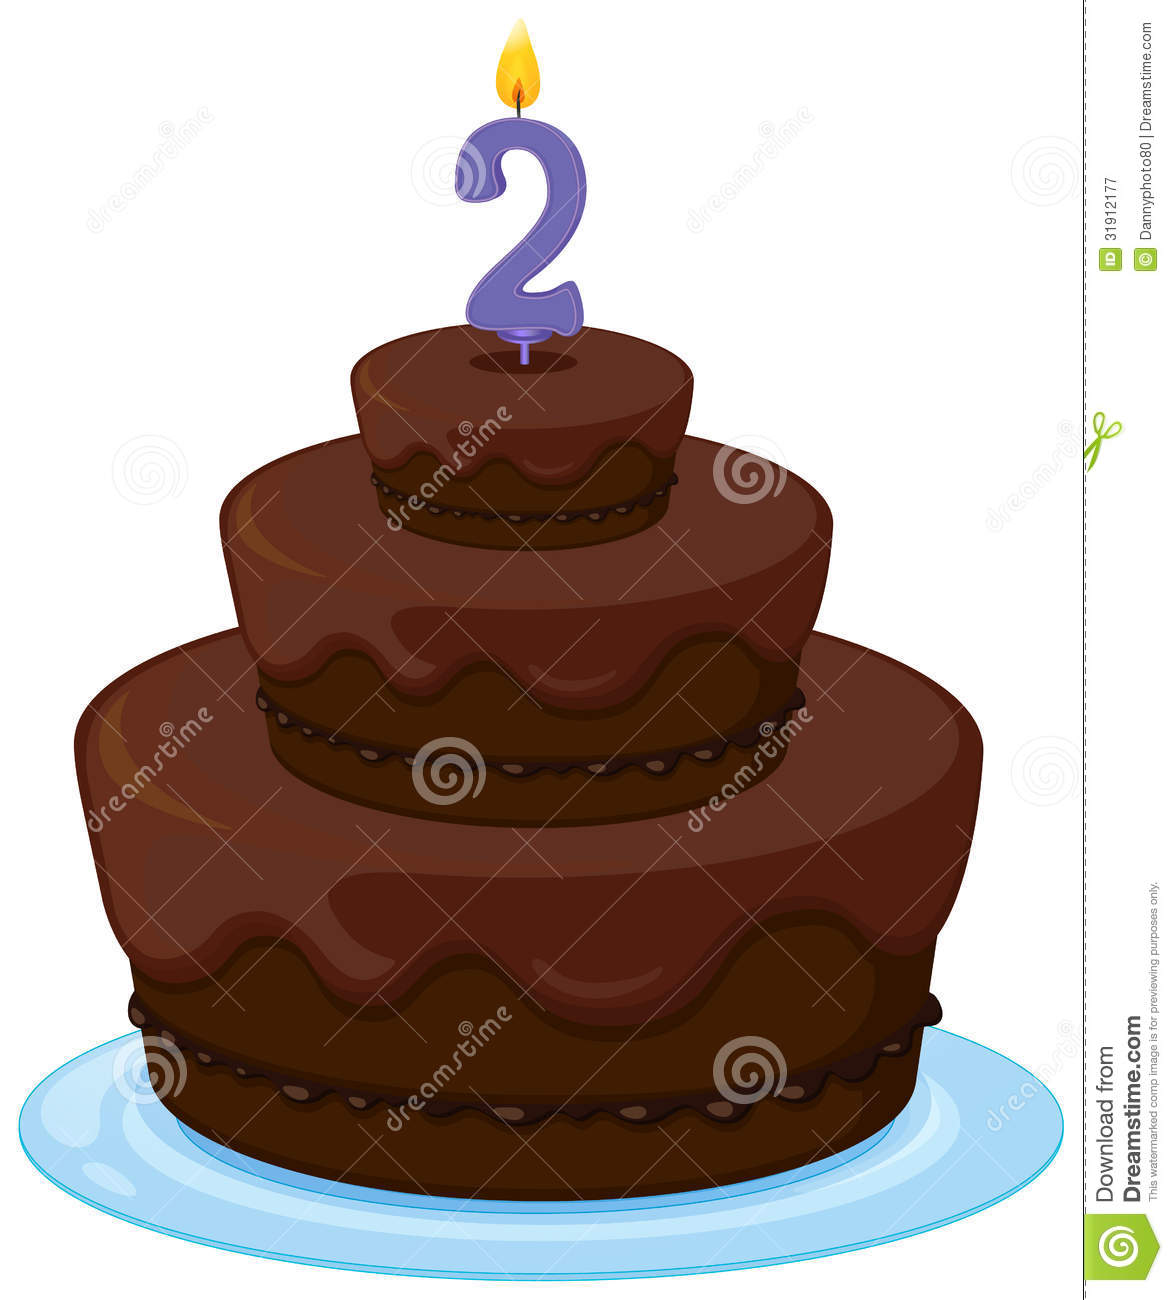 Brown Cake Royalty Free Stock Photography